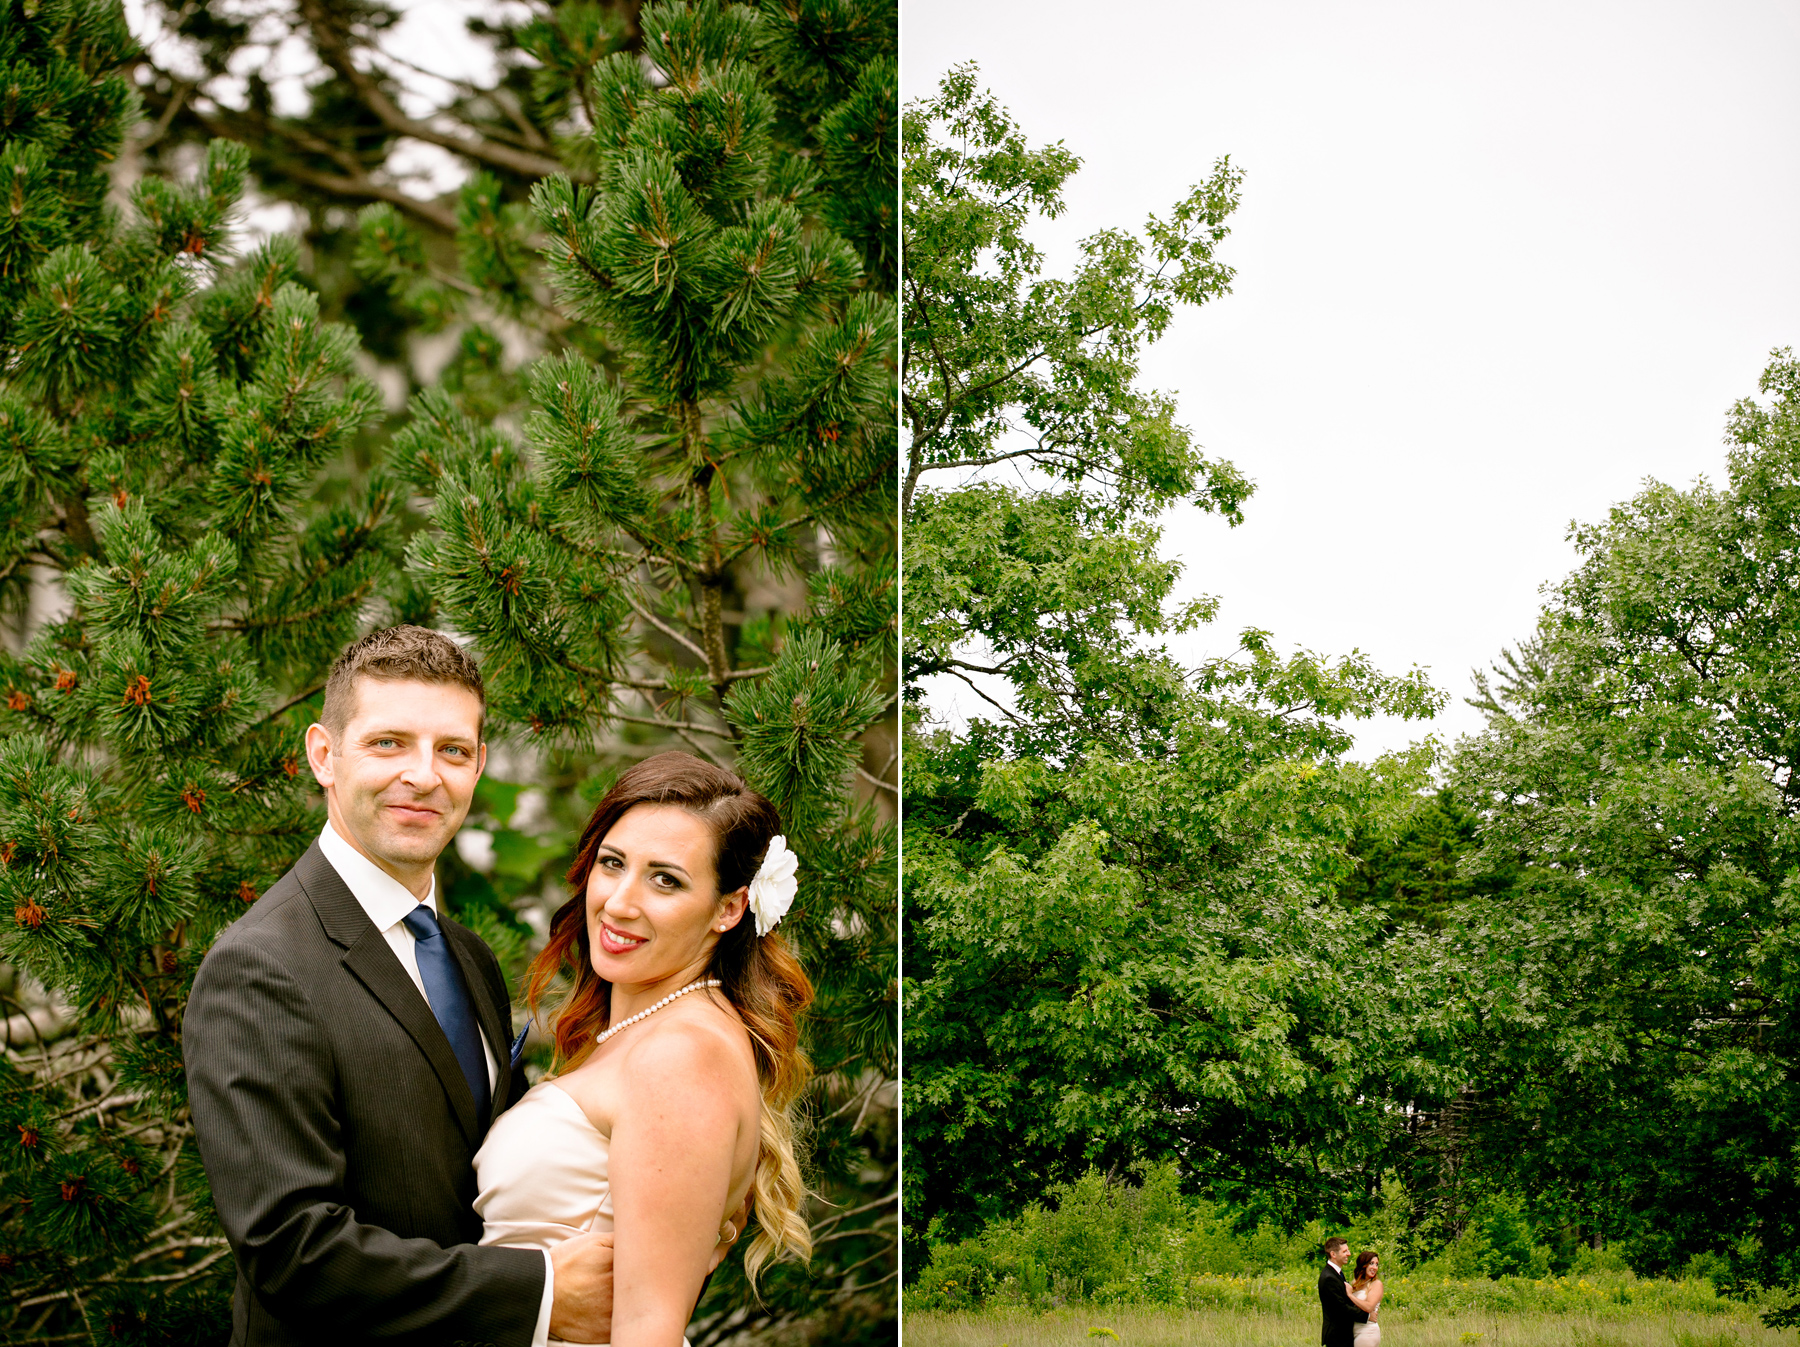 021-oromocto-elopement-photography-kandisebrown-ar2016